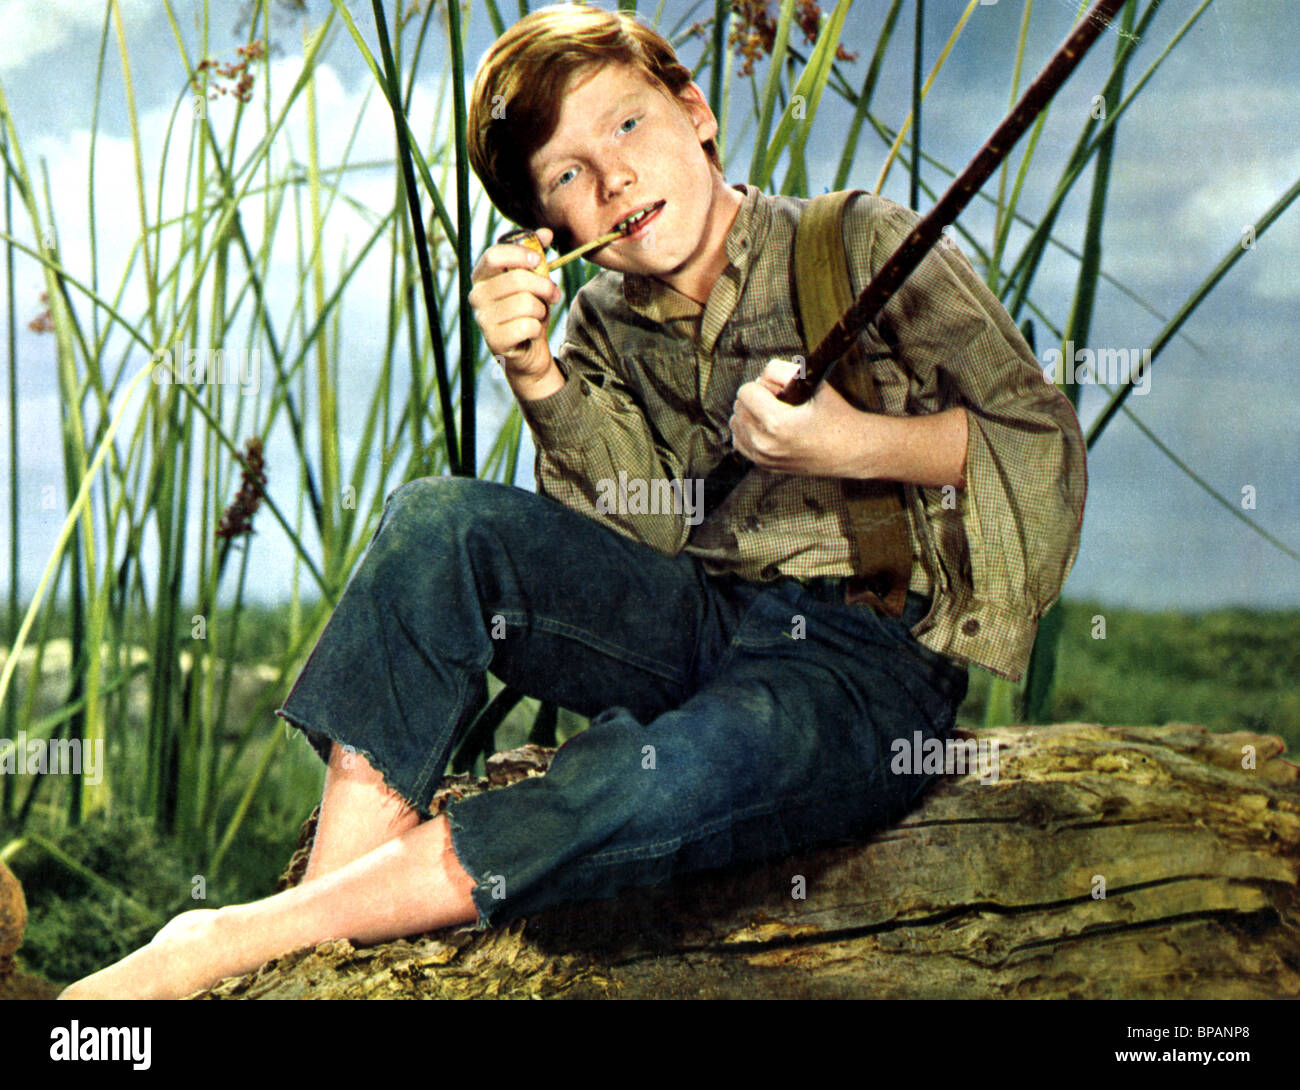 an analysis of the adventures of huckleberry finn The adventures of huckleberry finn study guide contains a biography of mark twain, literature essays, a complete e-text, quiz questions, major themes, characters, and a full summary and.